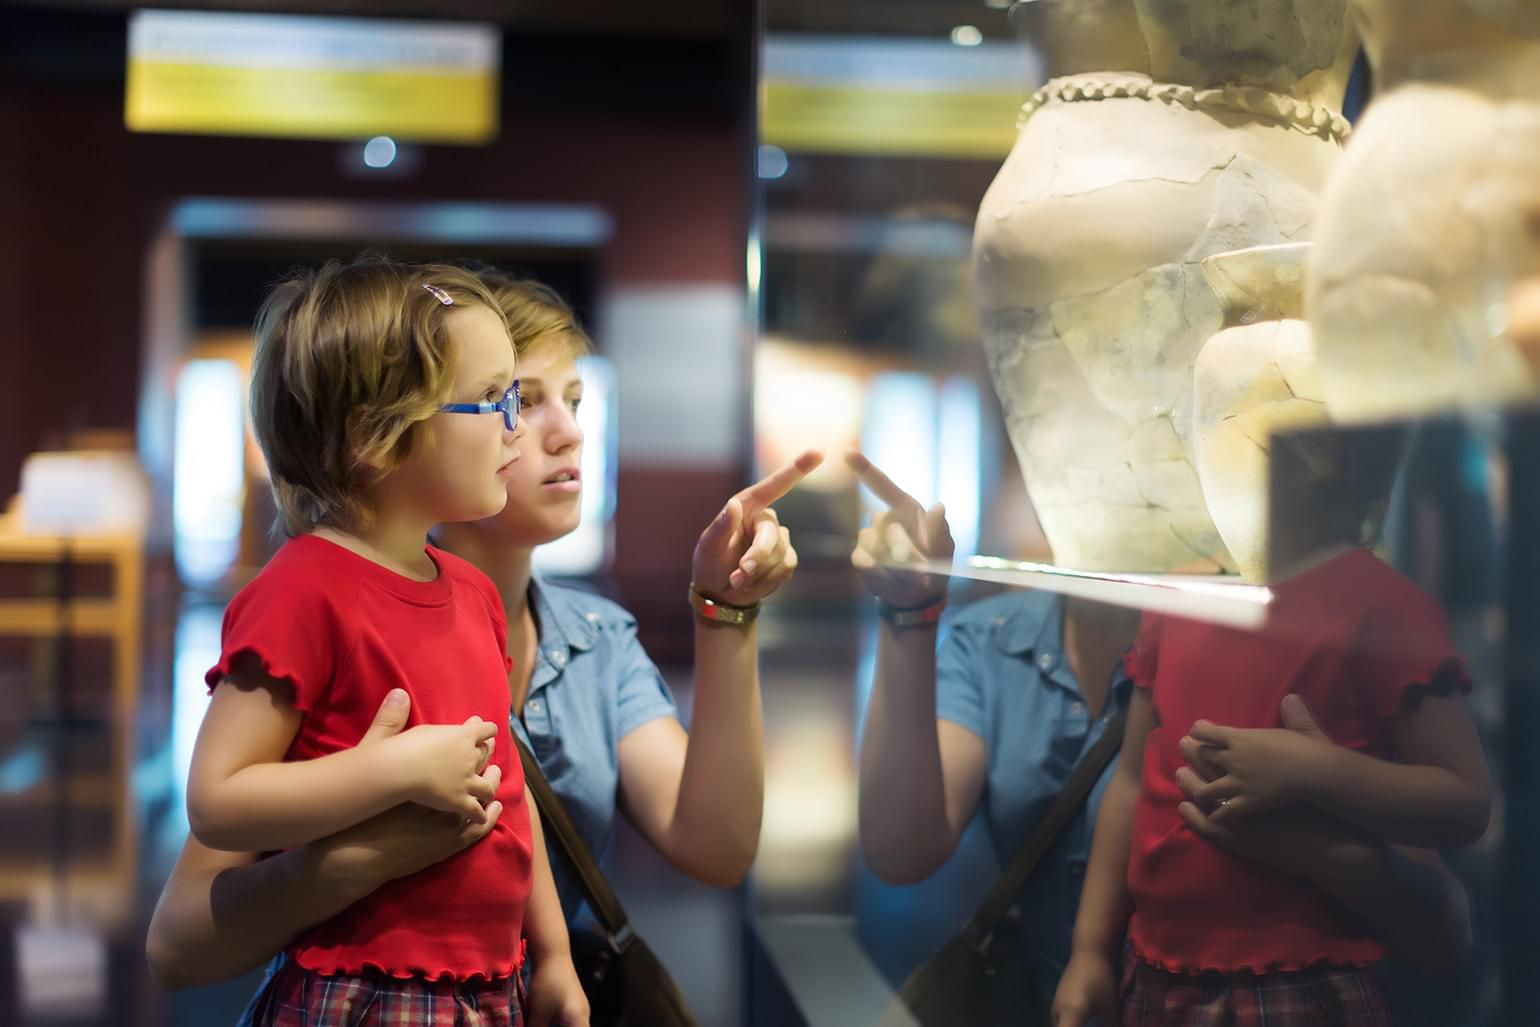 Woman and child looking at ancient Greek pottery in historical museum.